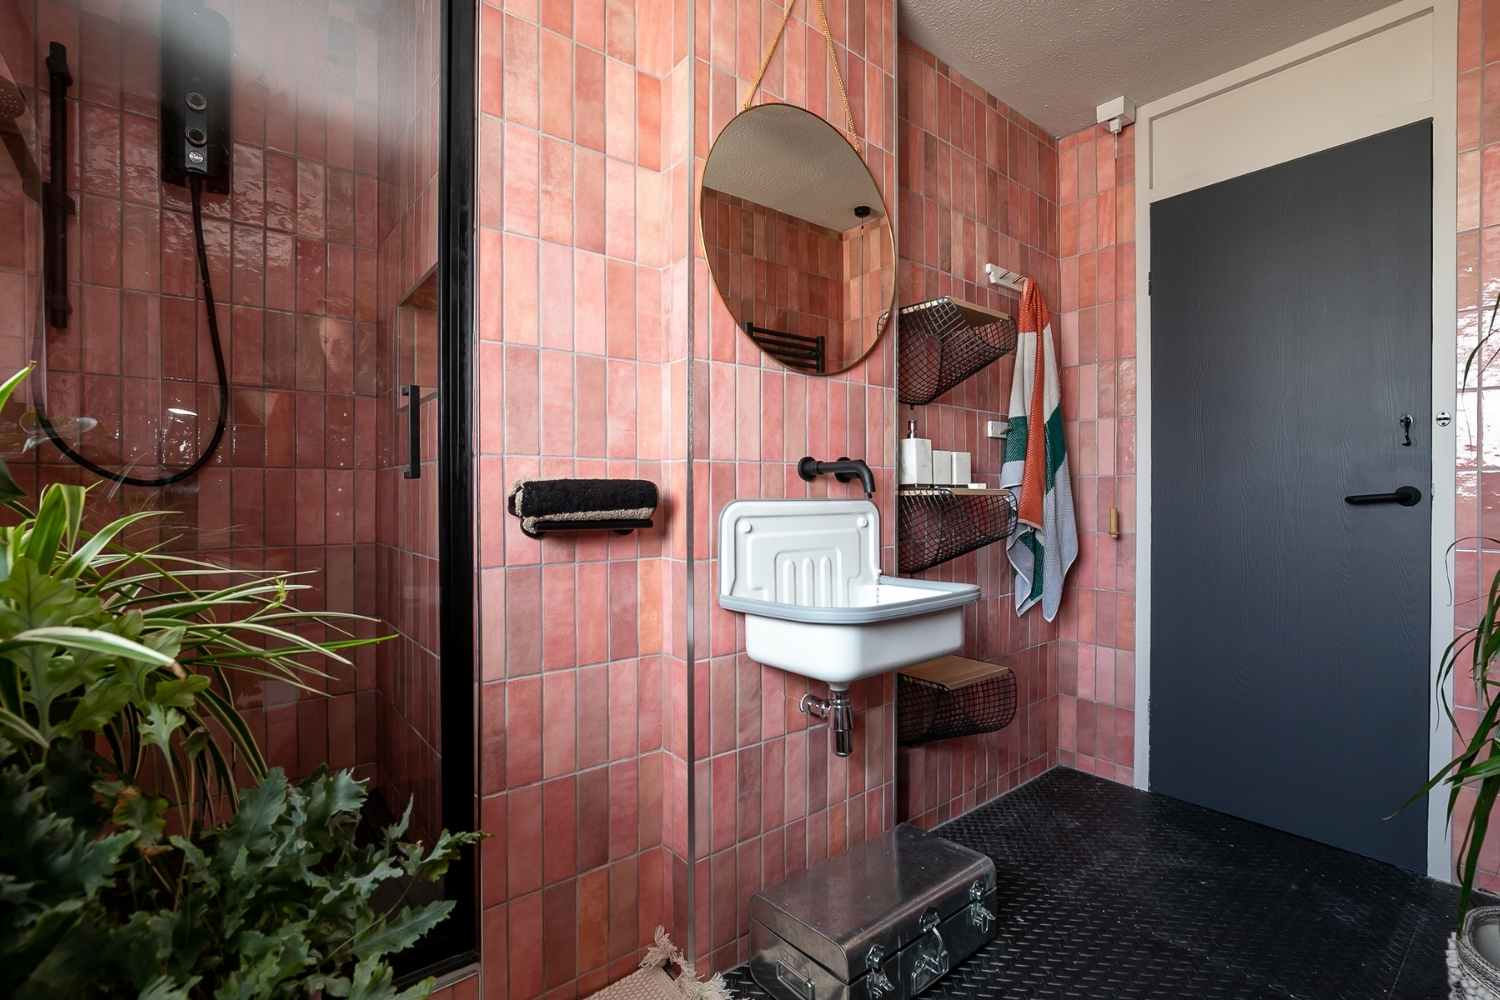 The bathroom - home of industrial chic